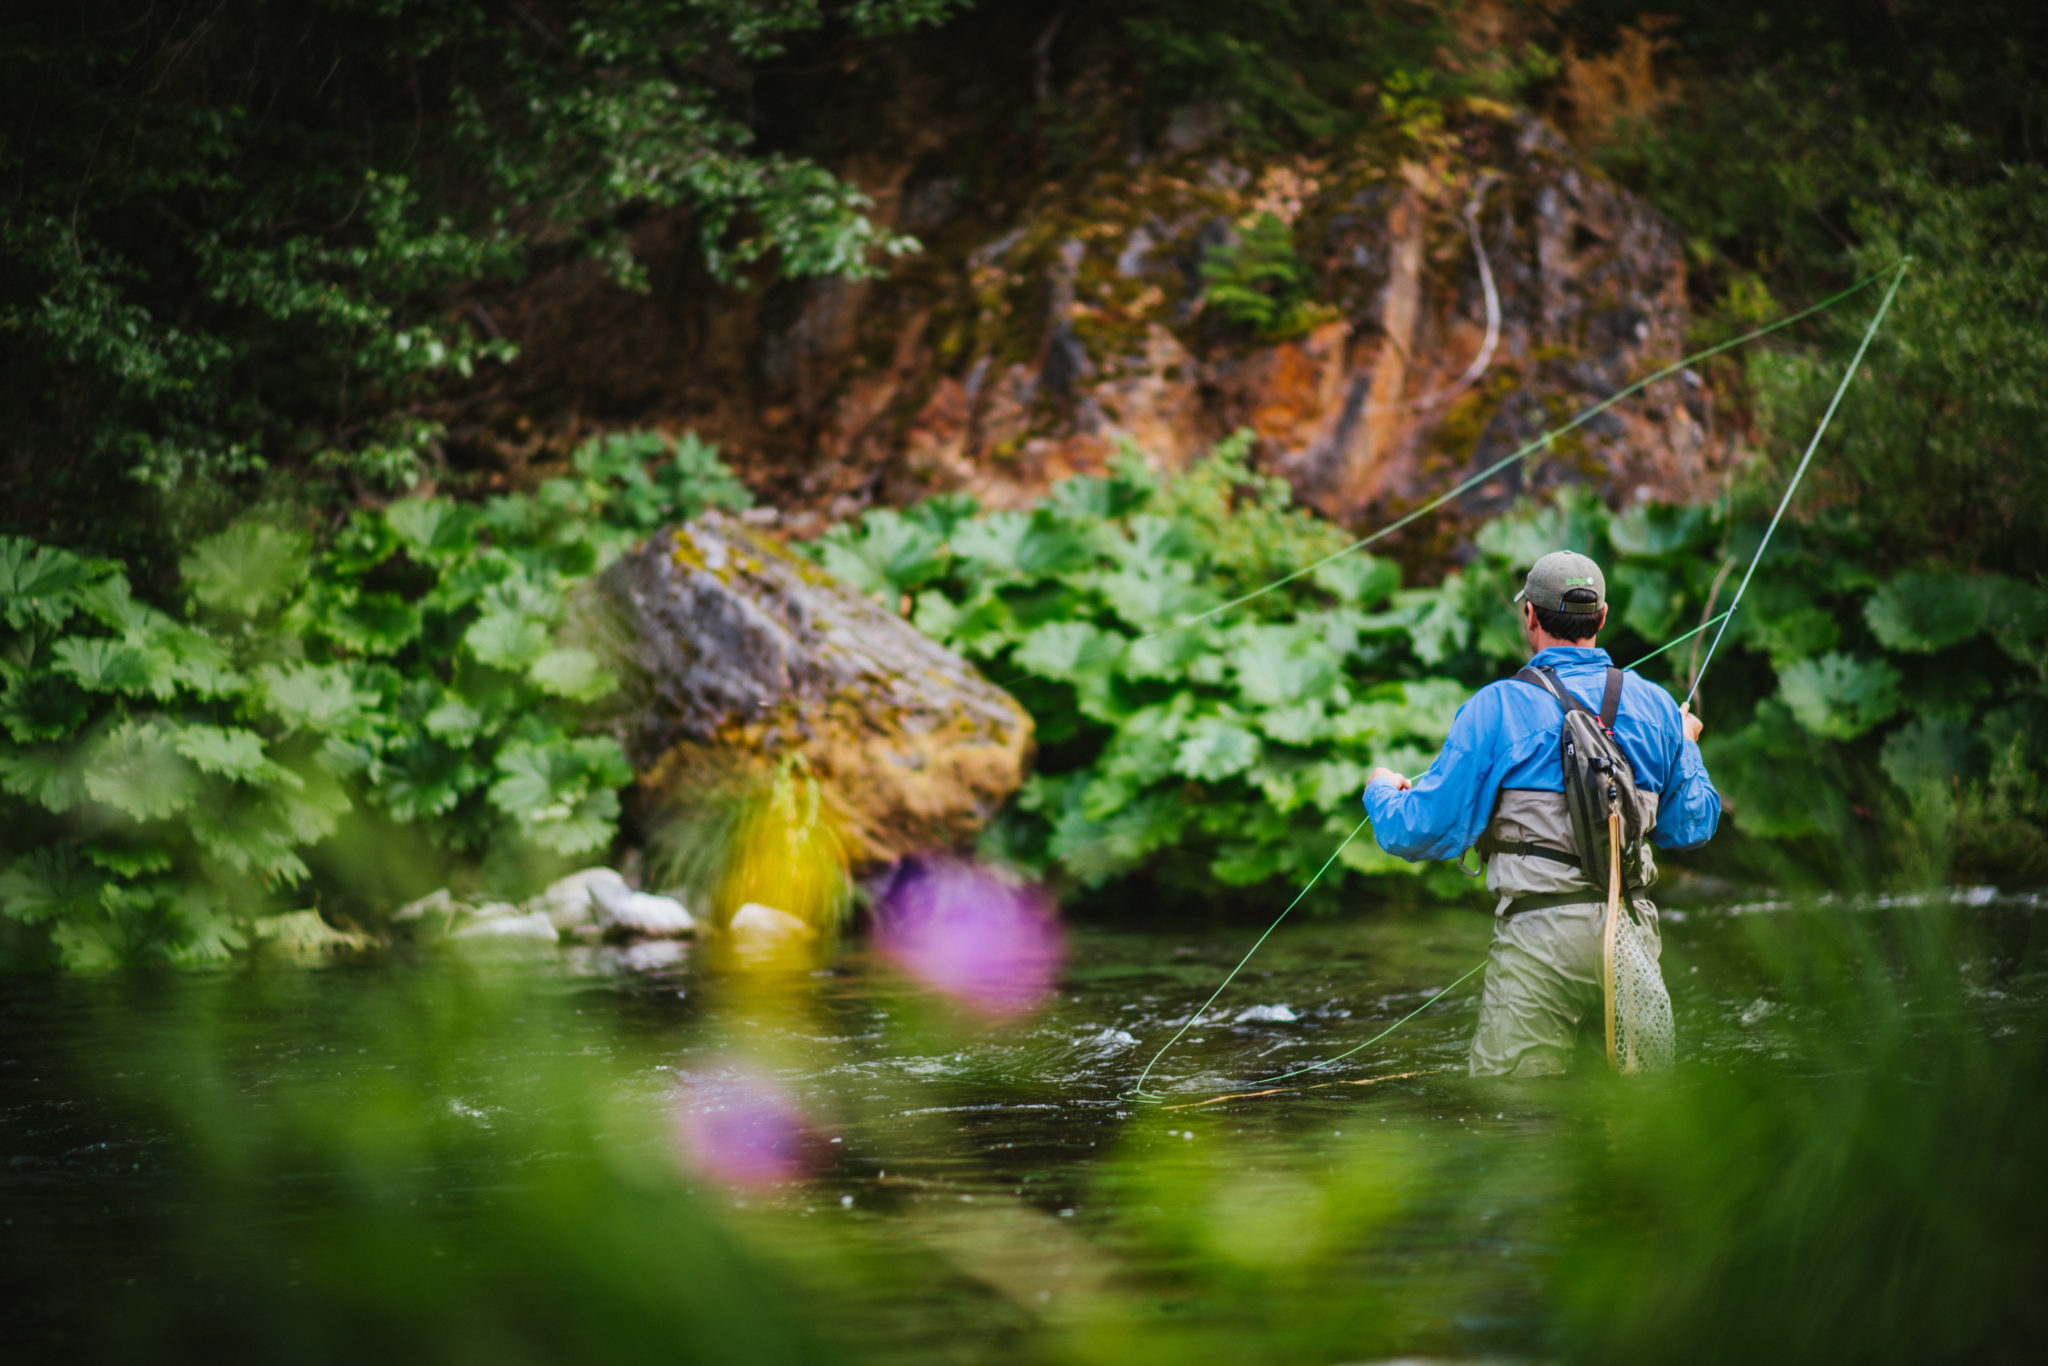 Discover Siskiyou Podcast featuring: Fly fishing the Upper Sacramento River in Dunsmuir, CA